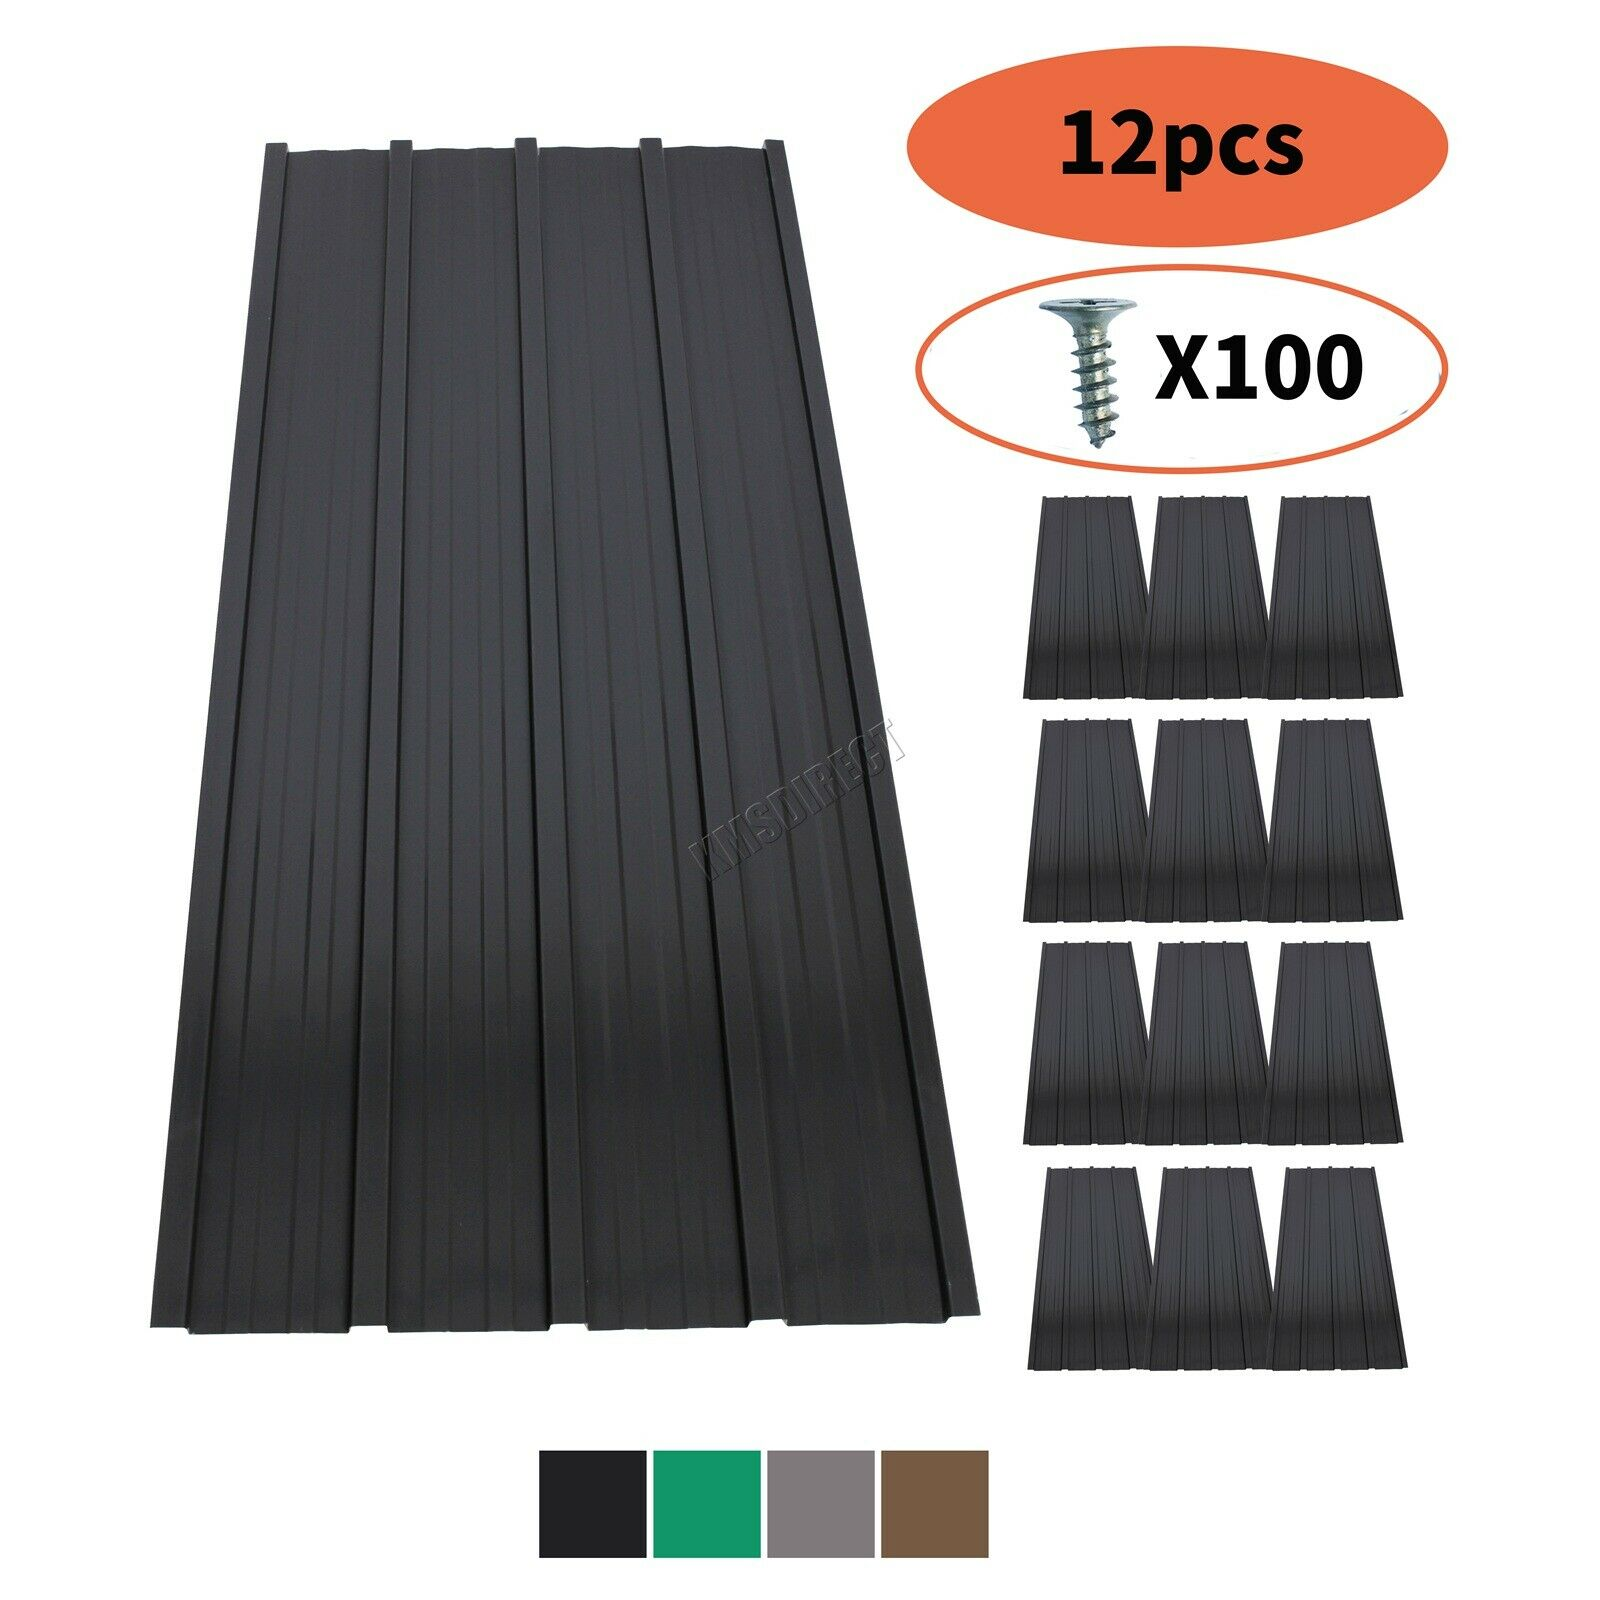 BIRCHTREE 12X Roof Sheets Corrugated Garage Carport Shed Metal Roofing Panels